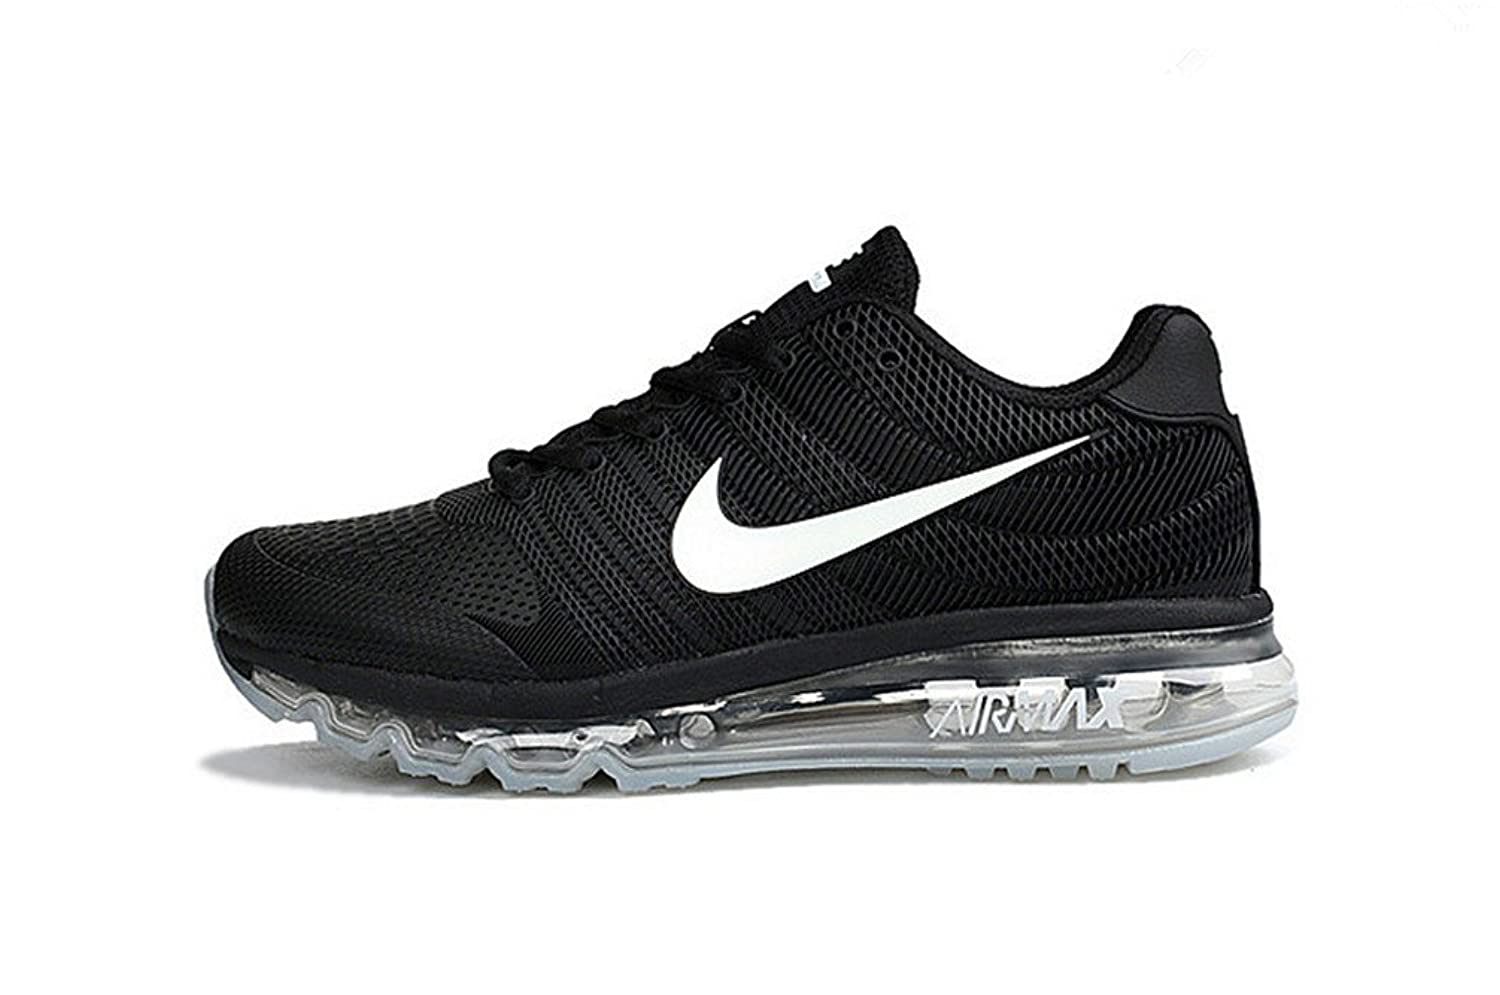 air max 2017 femme 40 nike air max 2017 homme noir gris nike air max 2017 homme noir gris. Black Bedroom Furniture Sets. Home Design Ideas